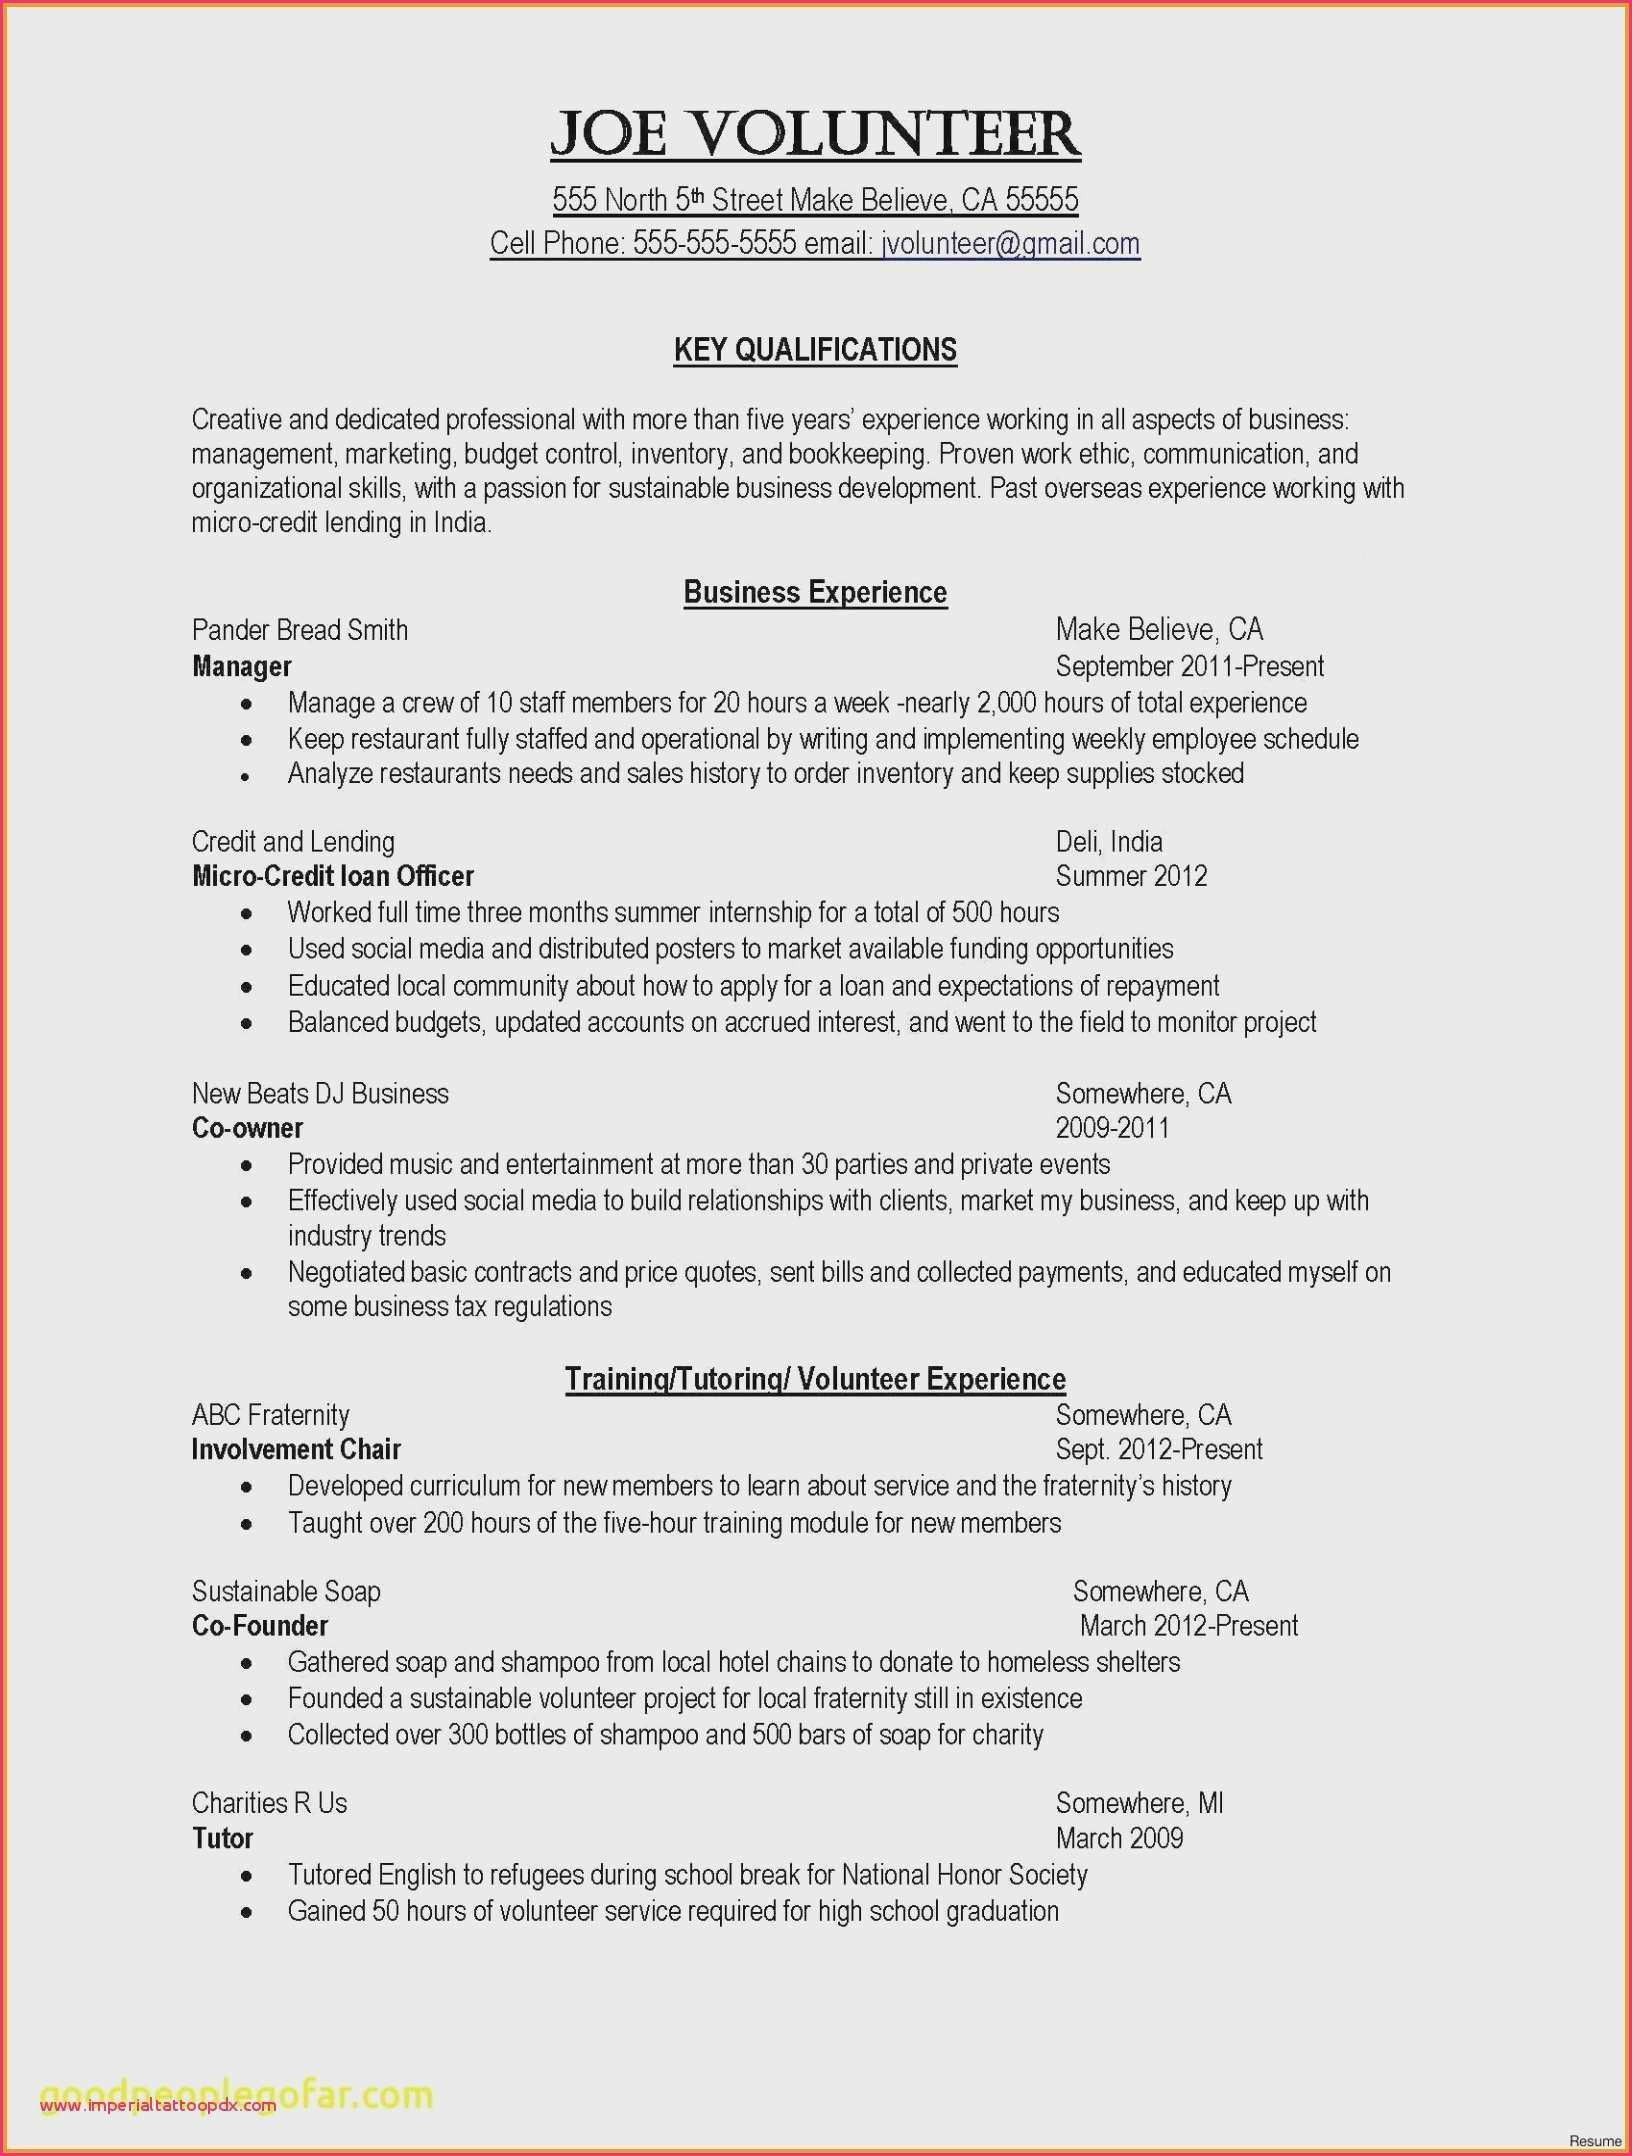 music business resume example-Business Development Representative Resume Sample Best Resume Layout Luxury Resume Examples 0d Good Looking Resume 16-f